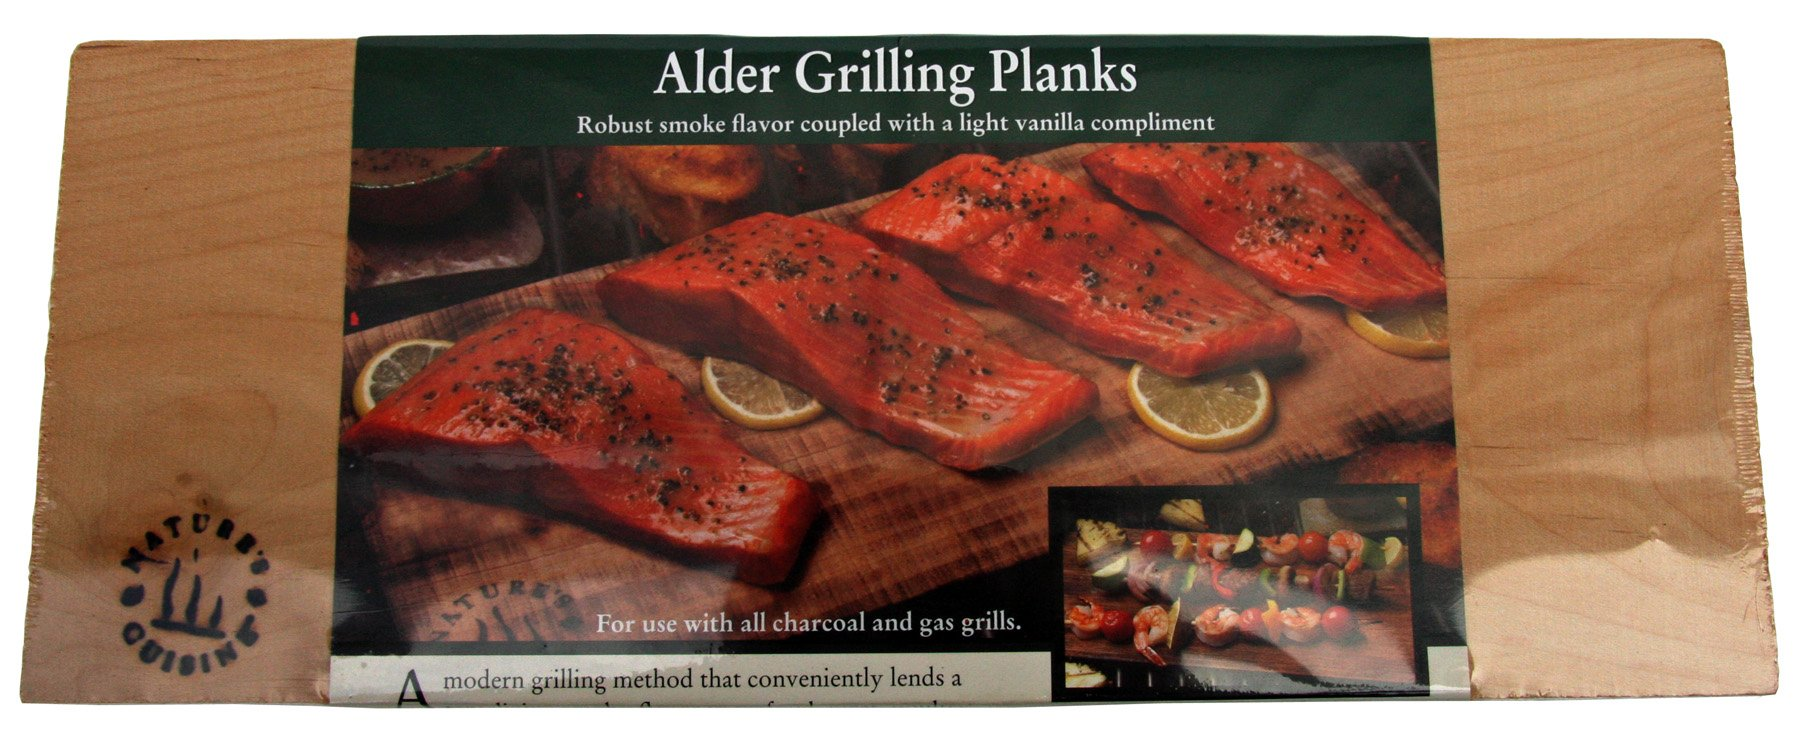 Nature's Cuisine NC005-2 14 by 5-1/2-Inch Alder Outdoor Grilling Plank, 2-Pack